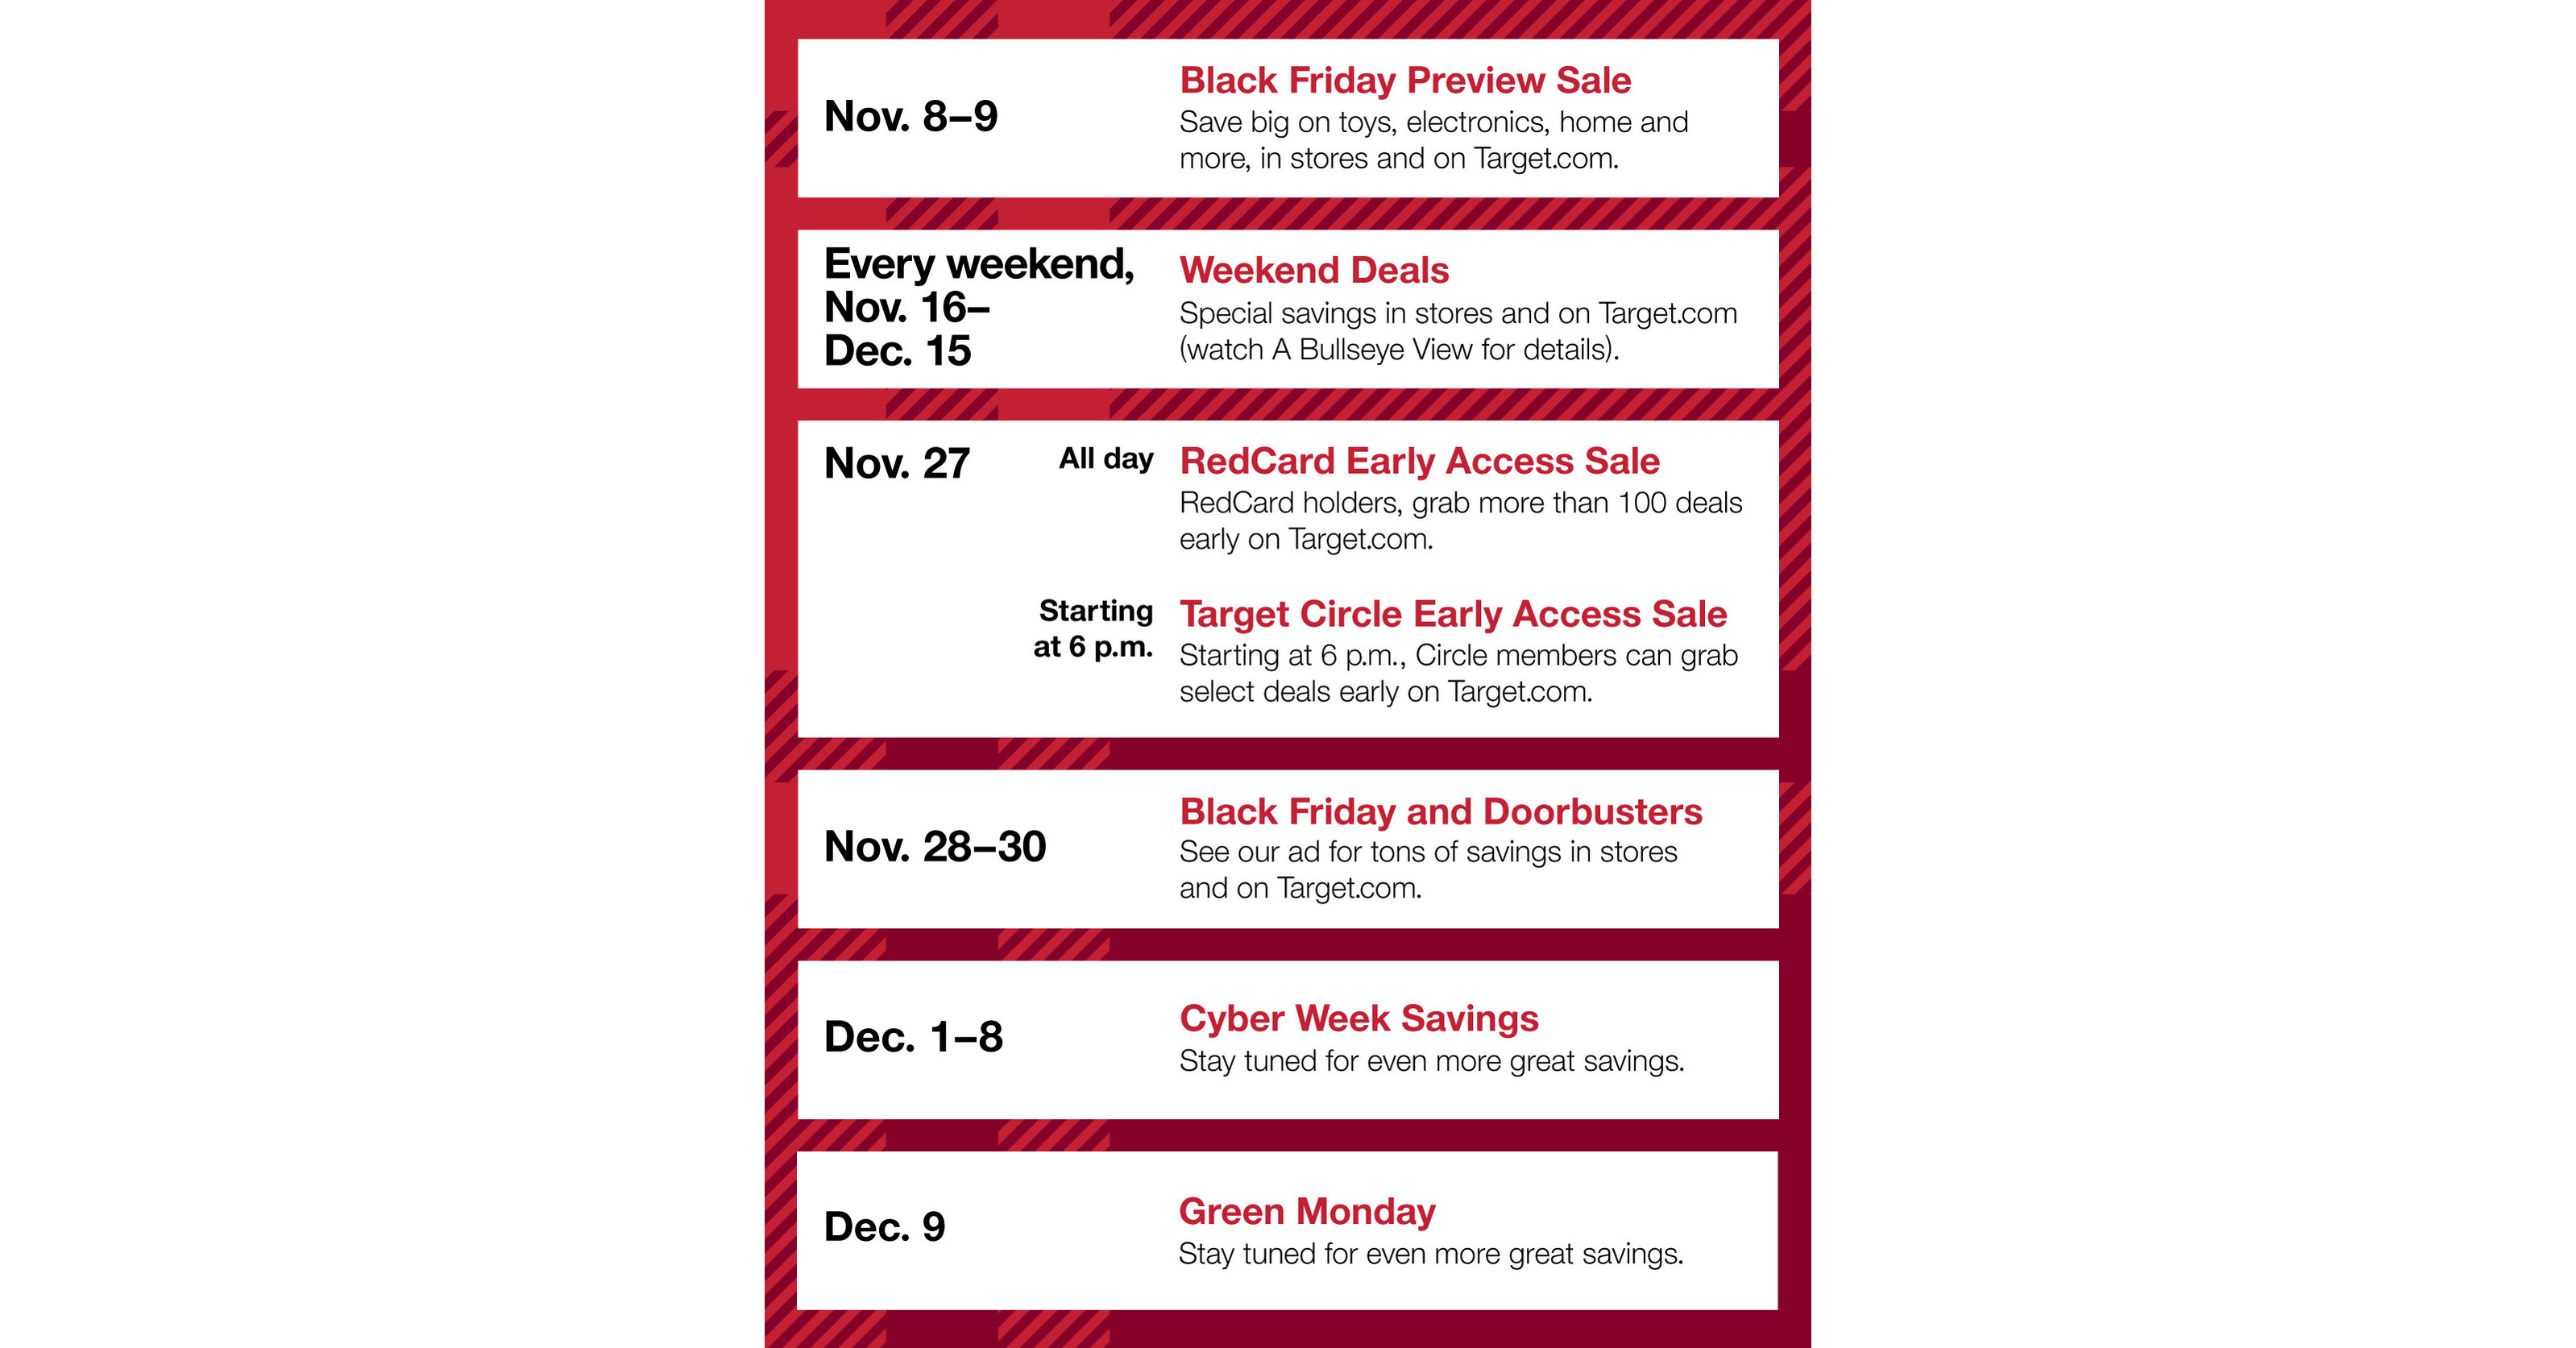 Target Introduces Holideals And Unveils Biggest Black Friday Yet With Two Day Preview Sale And Expanded Early Access